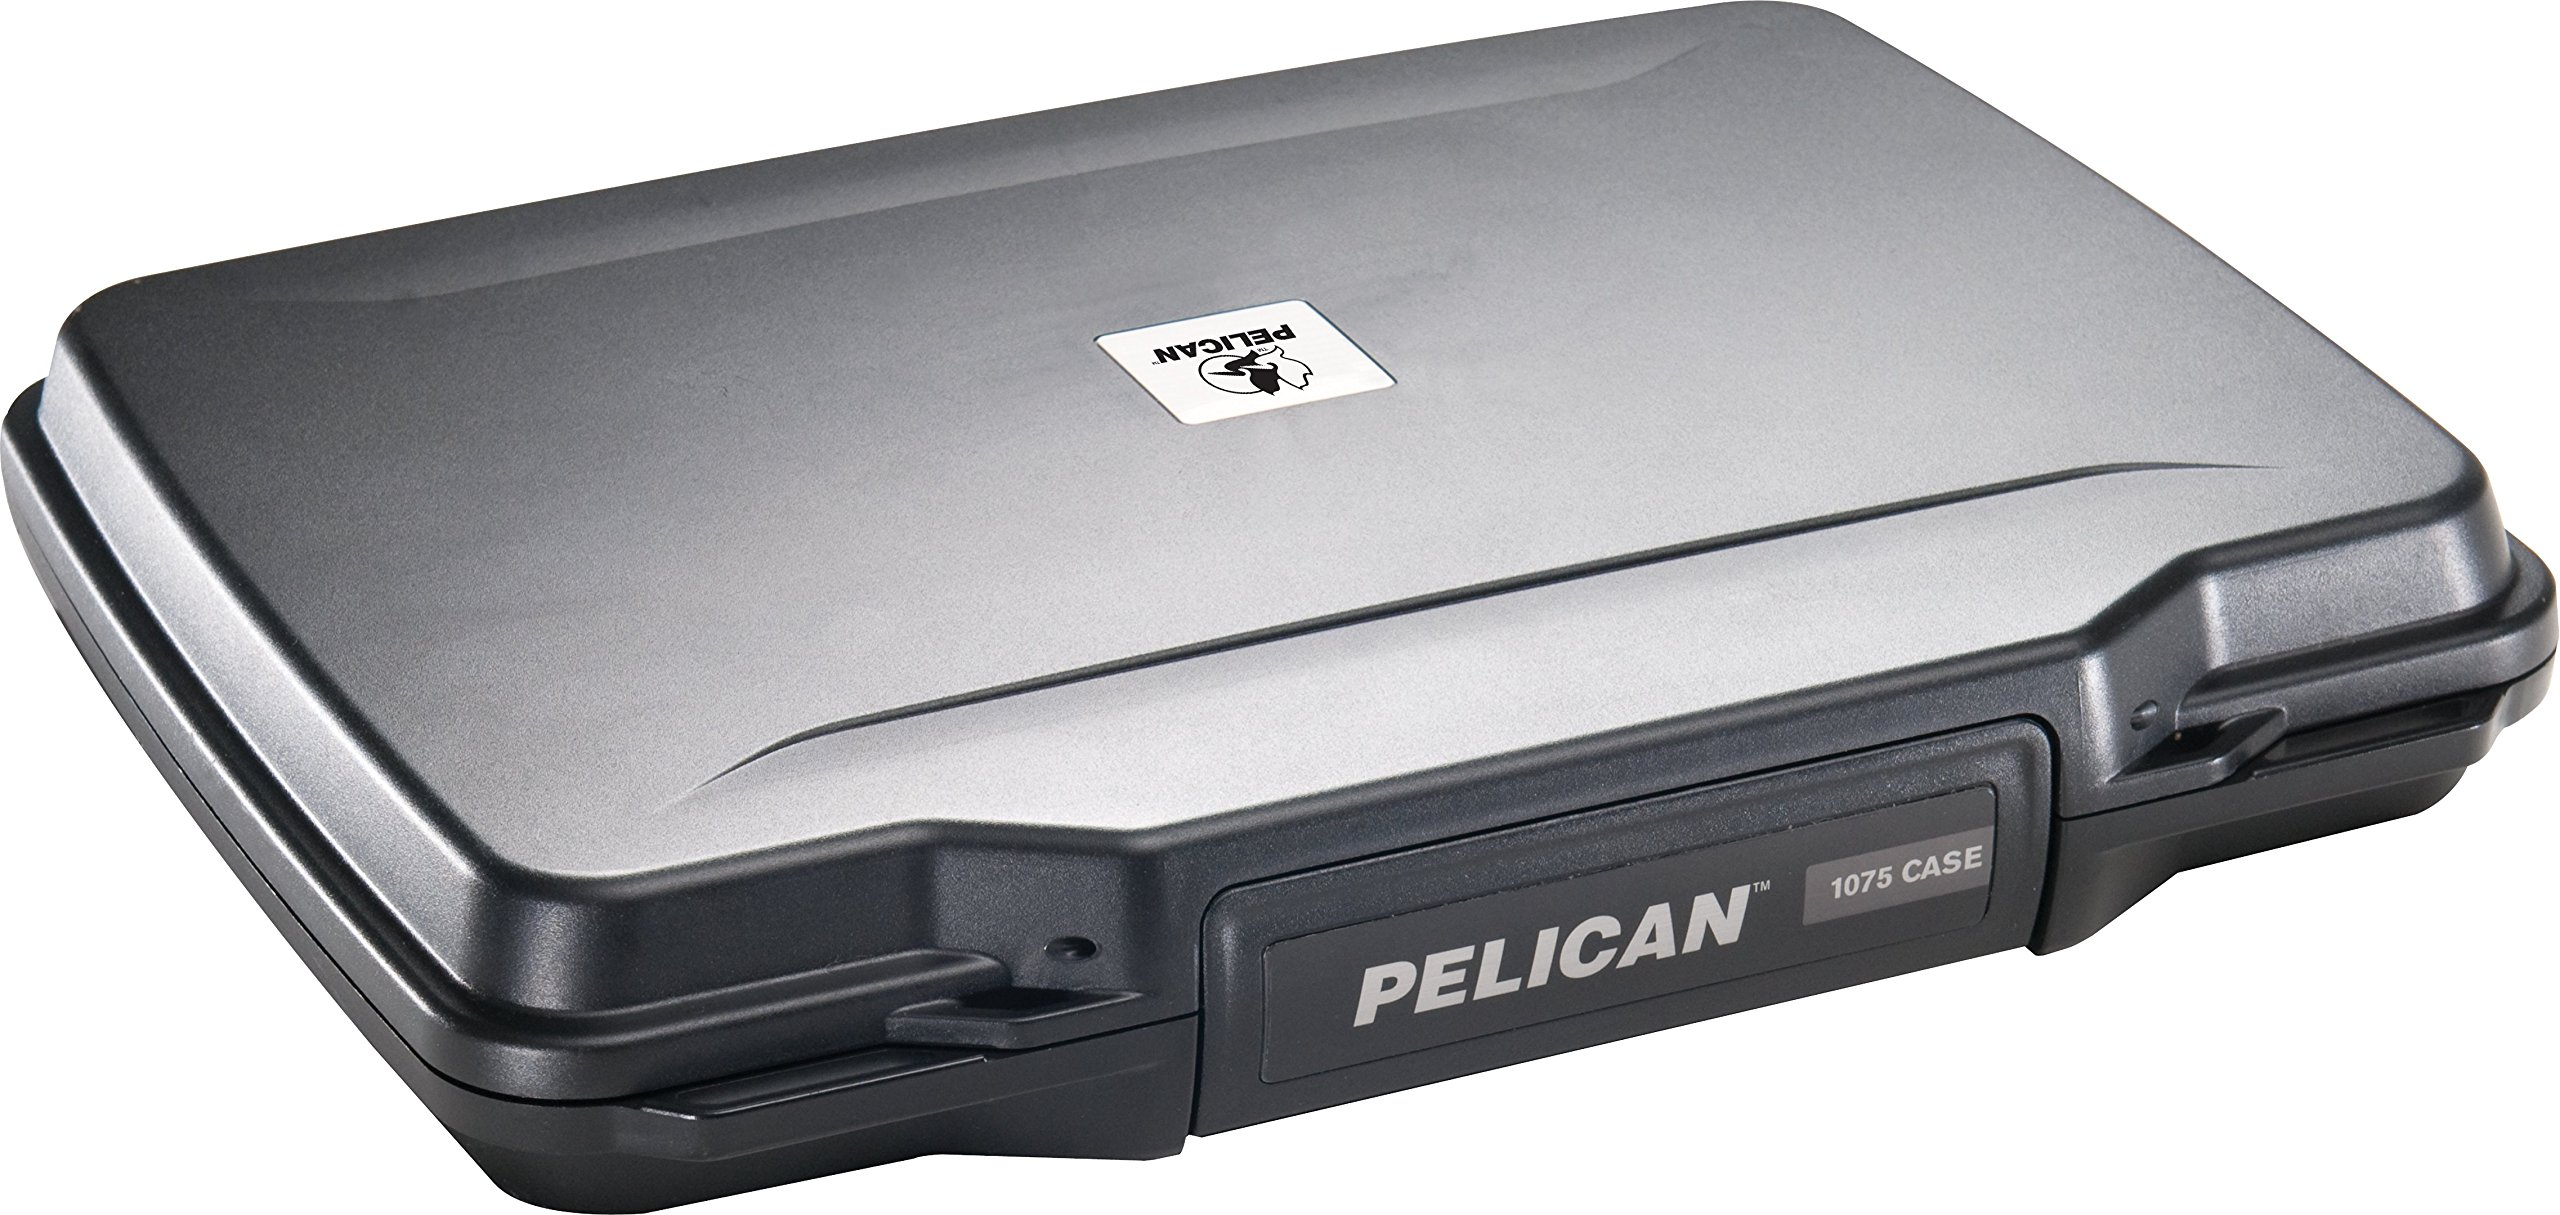 Pistol Case | Pelican P1075 Slim Profile Pistol Case (Black) by Pelican